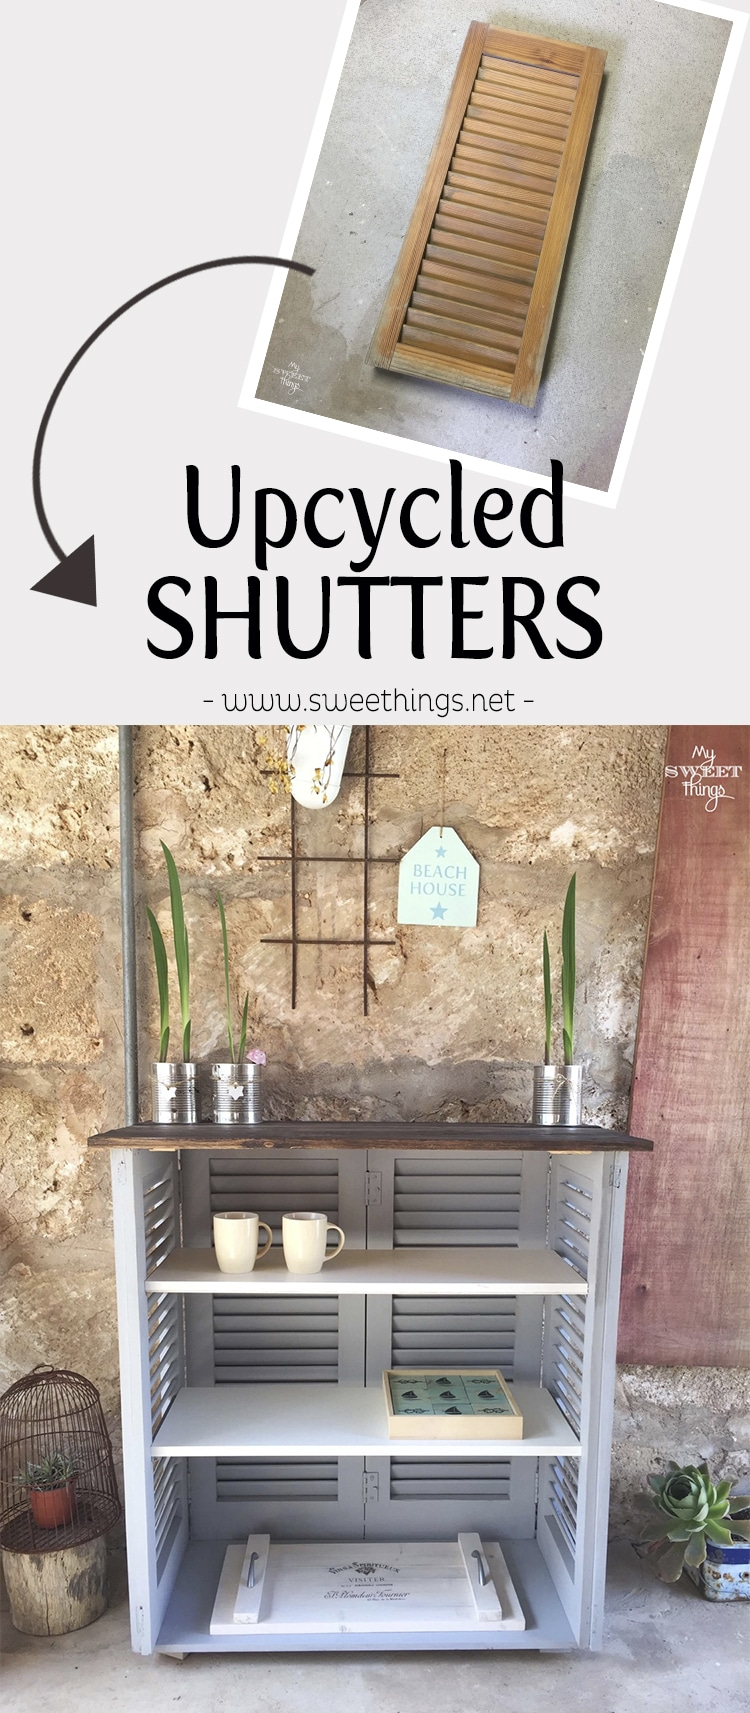 Upcycled shutters into an outdoor bar  ·  Via www.seethings.net